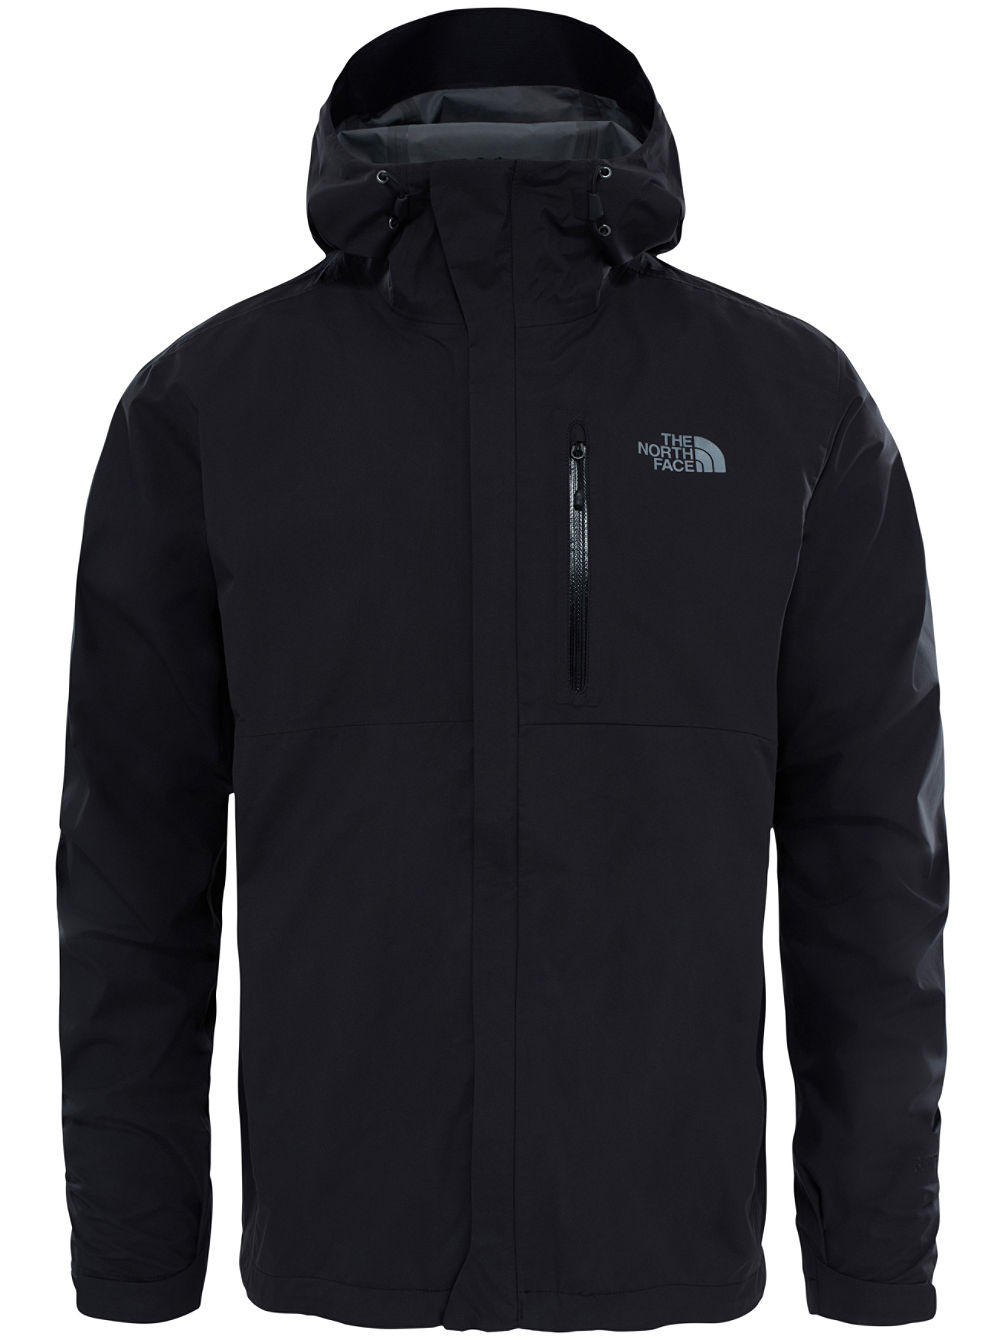 Dryzzle Outdoorjacke